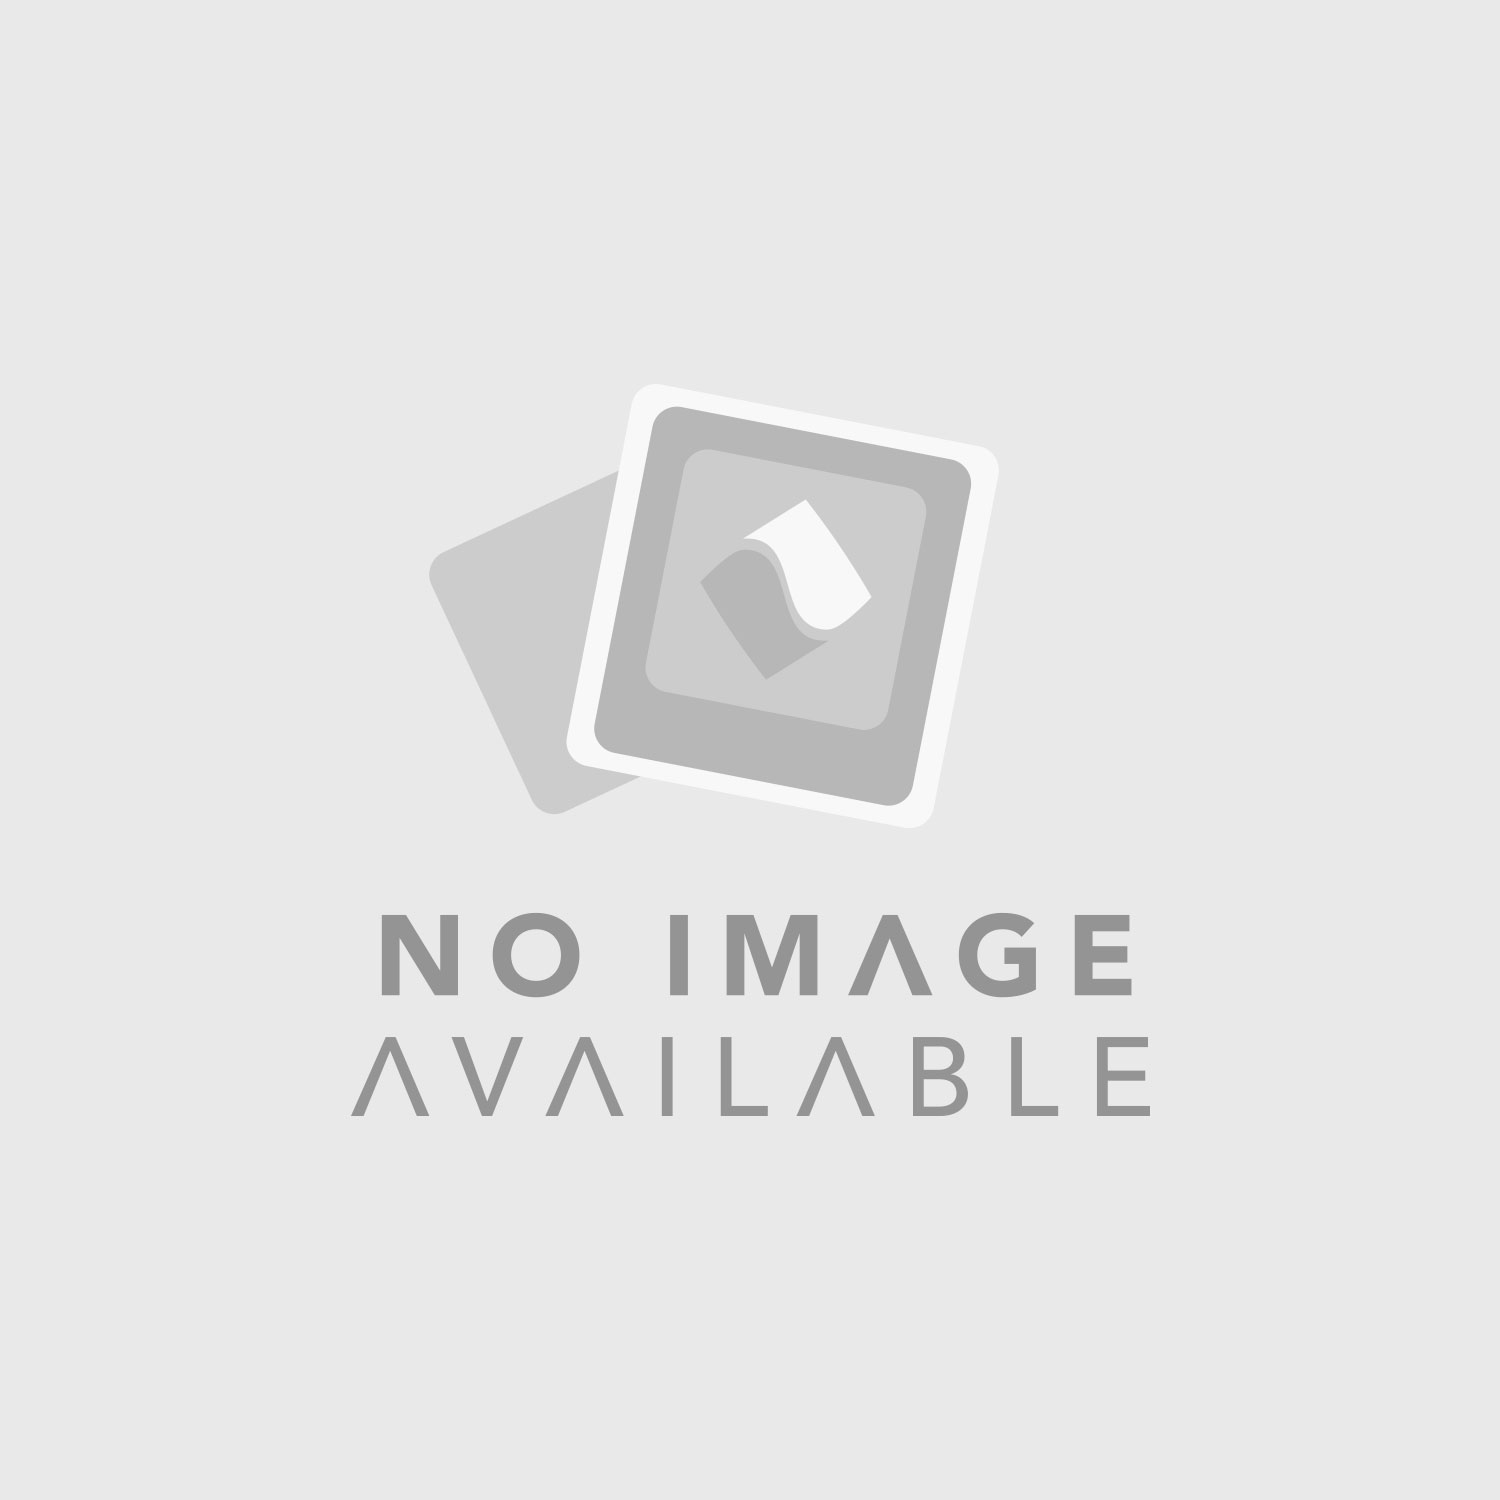 Pioneer DJ HDJ-X10 Professional Over-Ear DJ Headphones (Black)